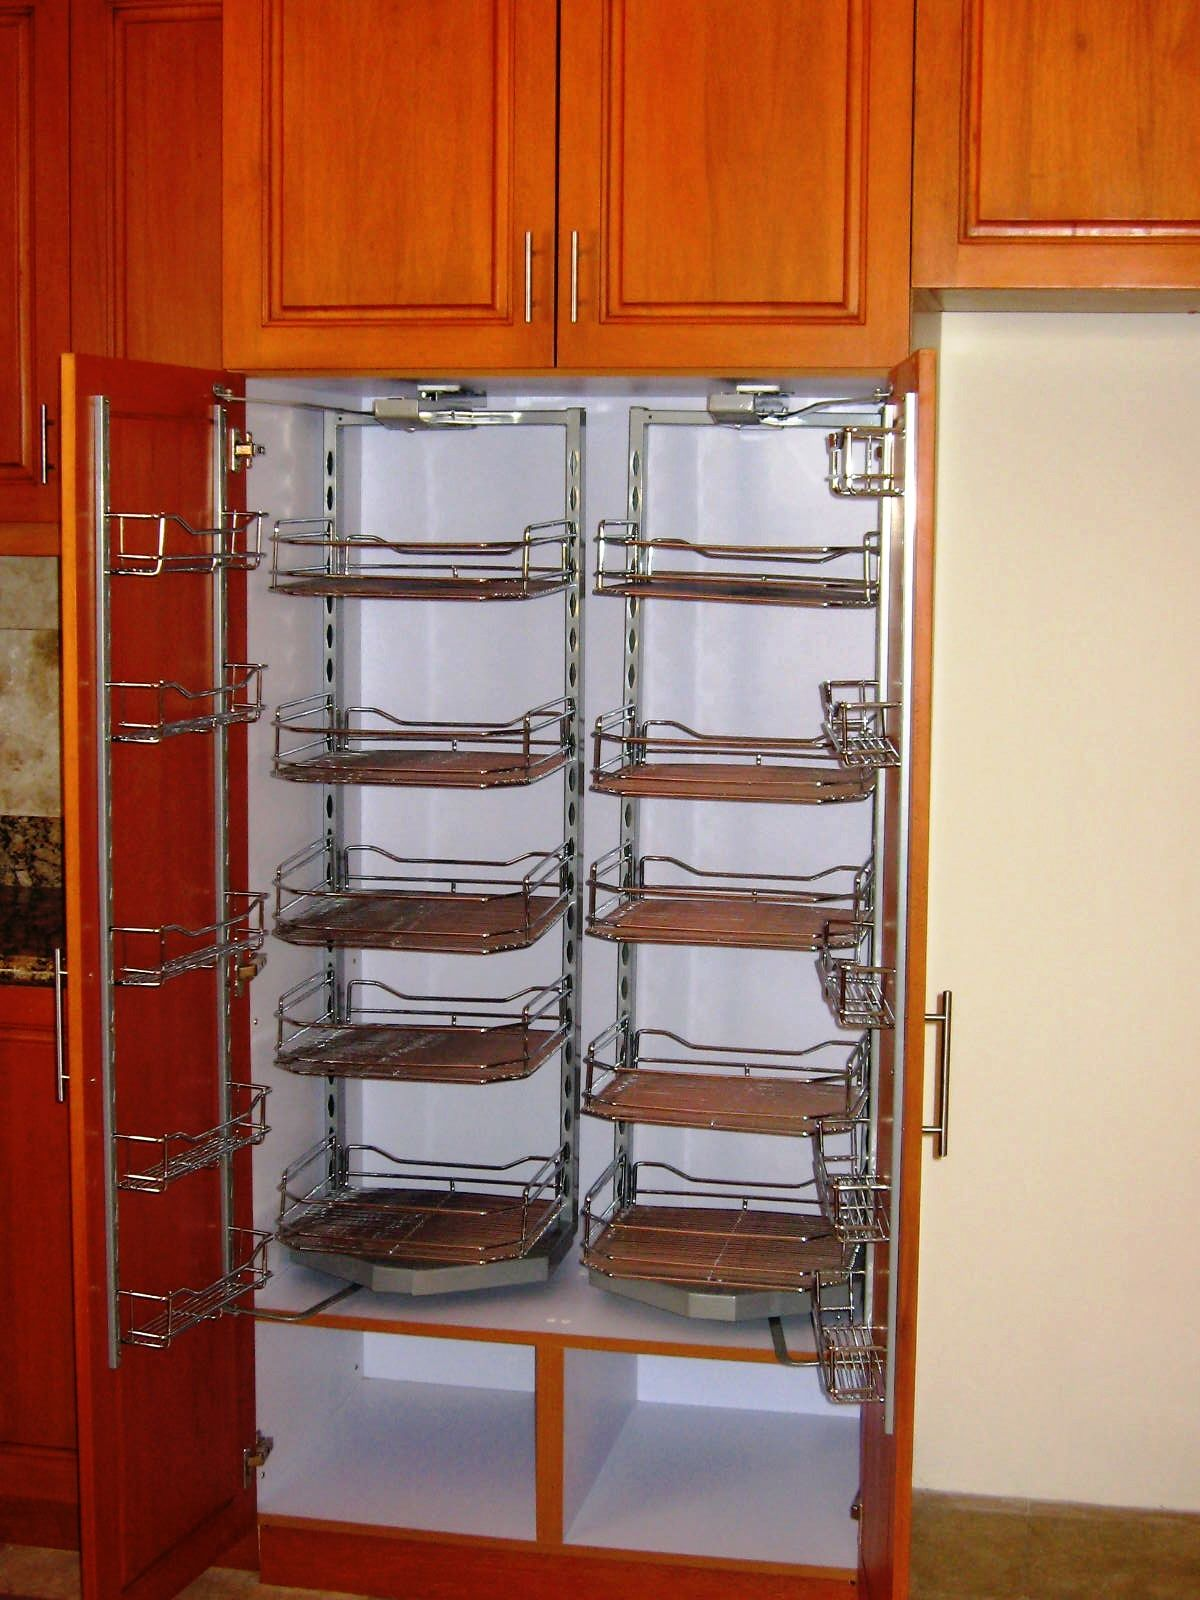 Stainless Steel Swing out Pantry Storage | Hannah Modular ...